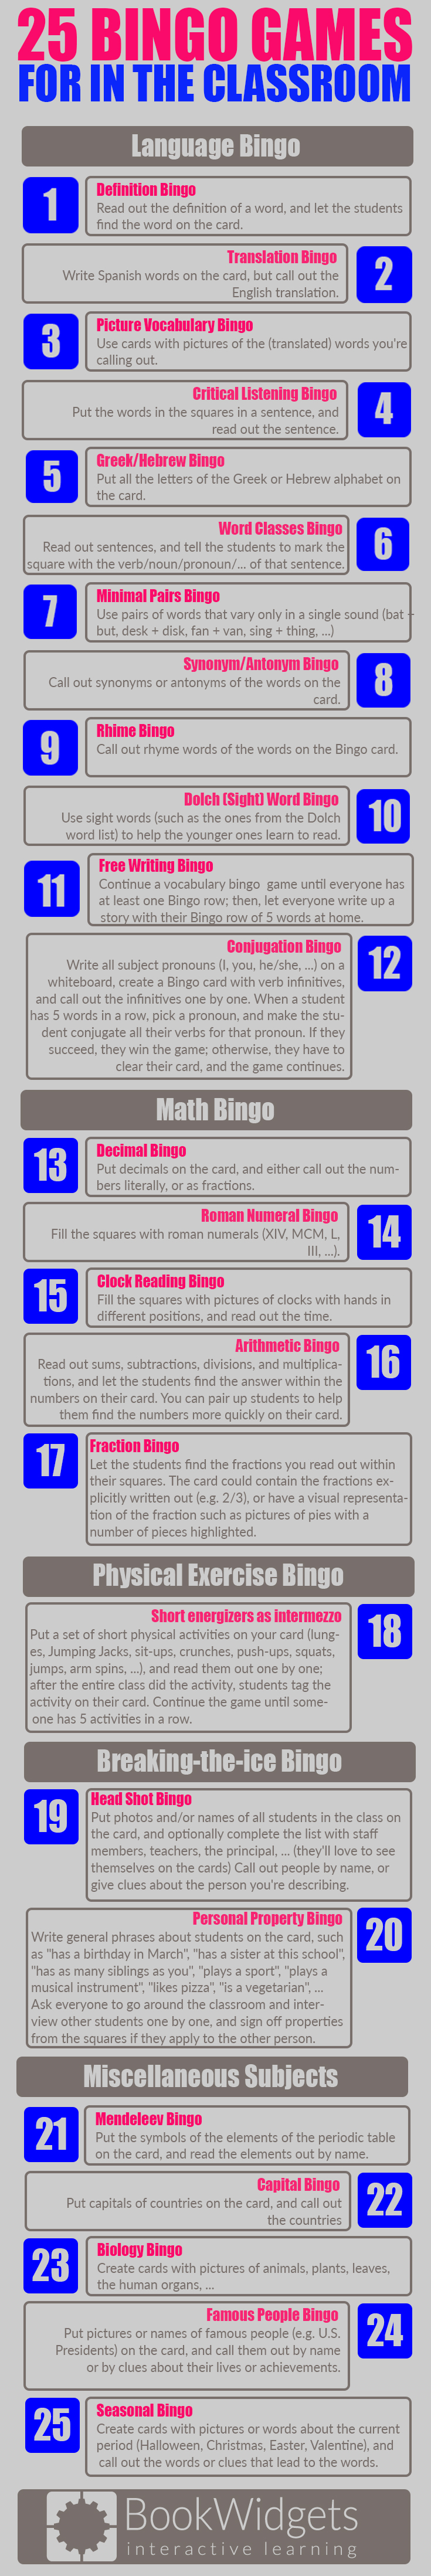 25 bingo games for in the classroom